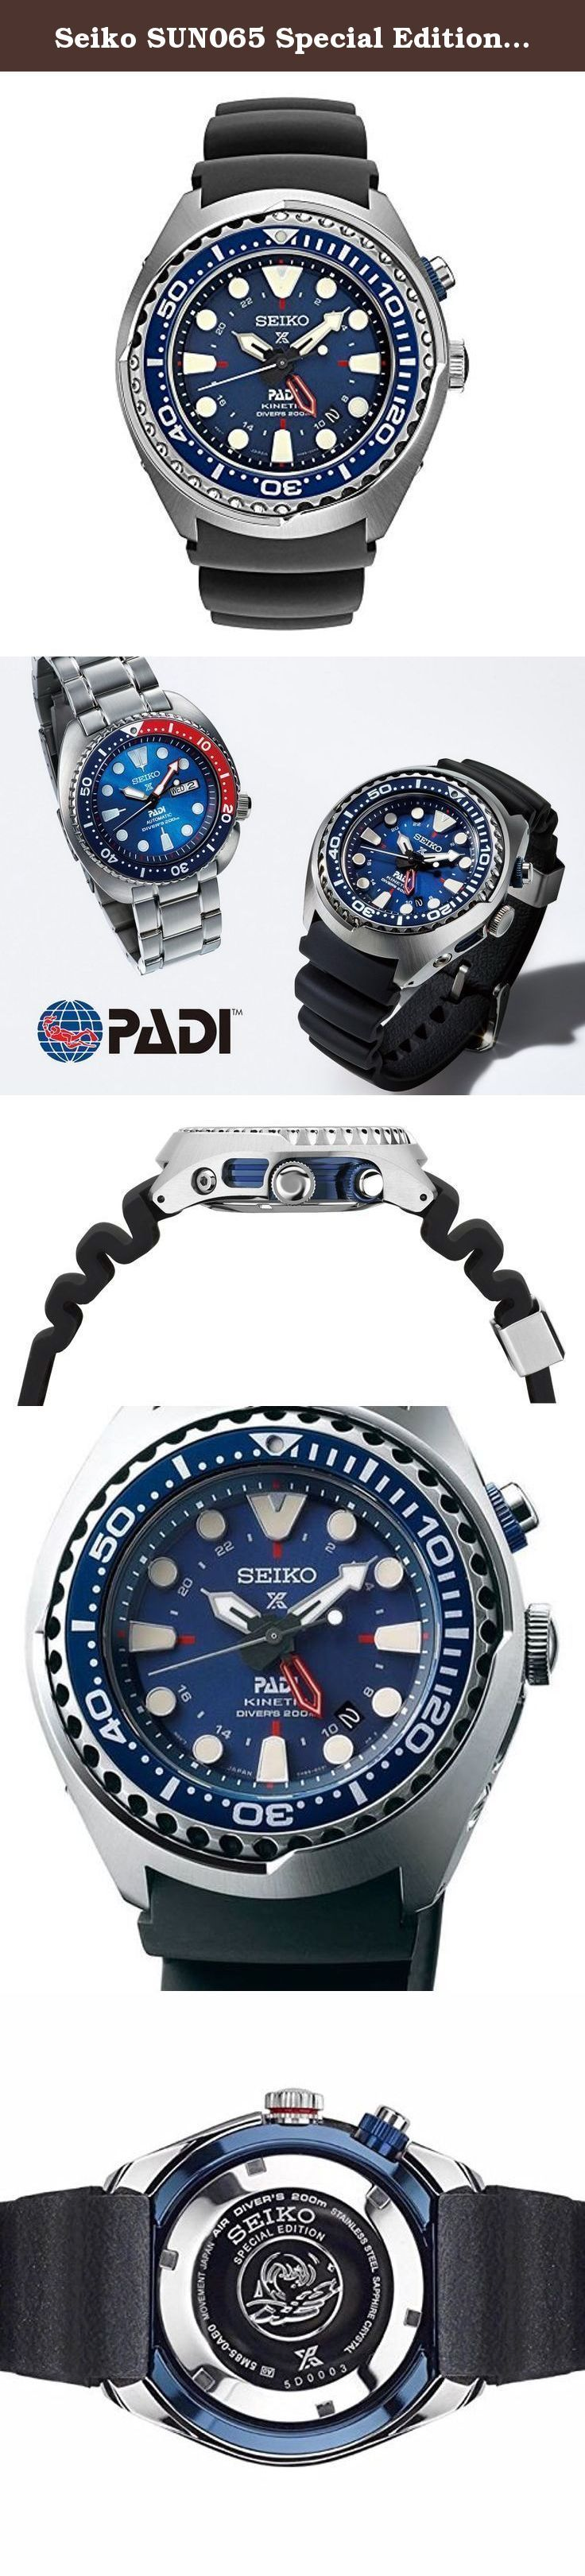 Seiko SUN065 Special Edition Padi Kinetic GMT Diver Watch by Seiko Watches. PADI PROSPEX COLLECTION: This Watch is powered by light energy, environmentally friendly, and has a six-month power reserve once fully charged. It has a power reserve indicator function, GMT indicator, and one-way rotating elapsed time bezel. The watch has a date calendar, lumibrite hands and markers, and a screw down crown, pusher, and case back. The watch has a Movement caliber of 5m85.